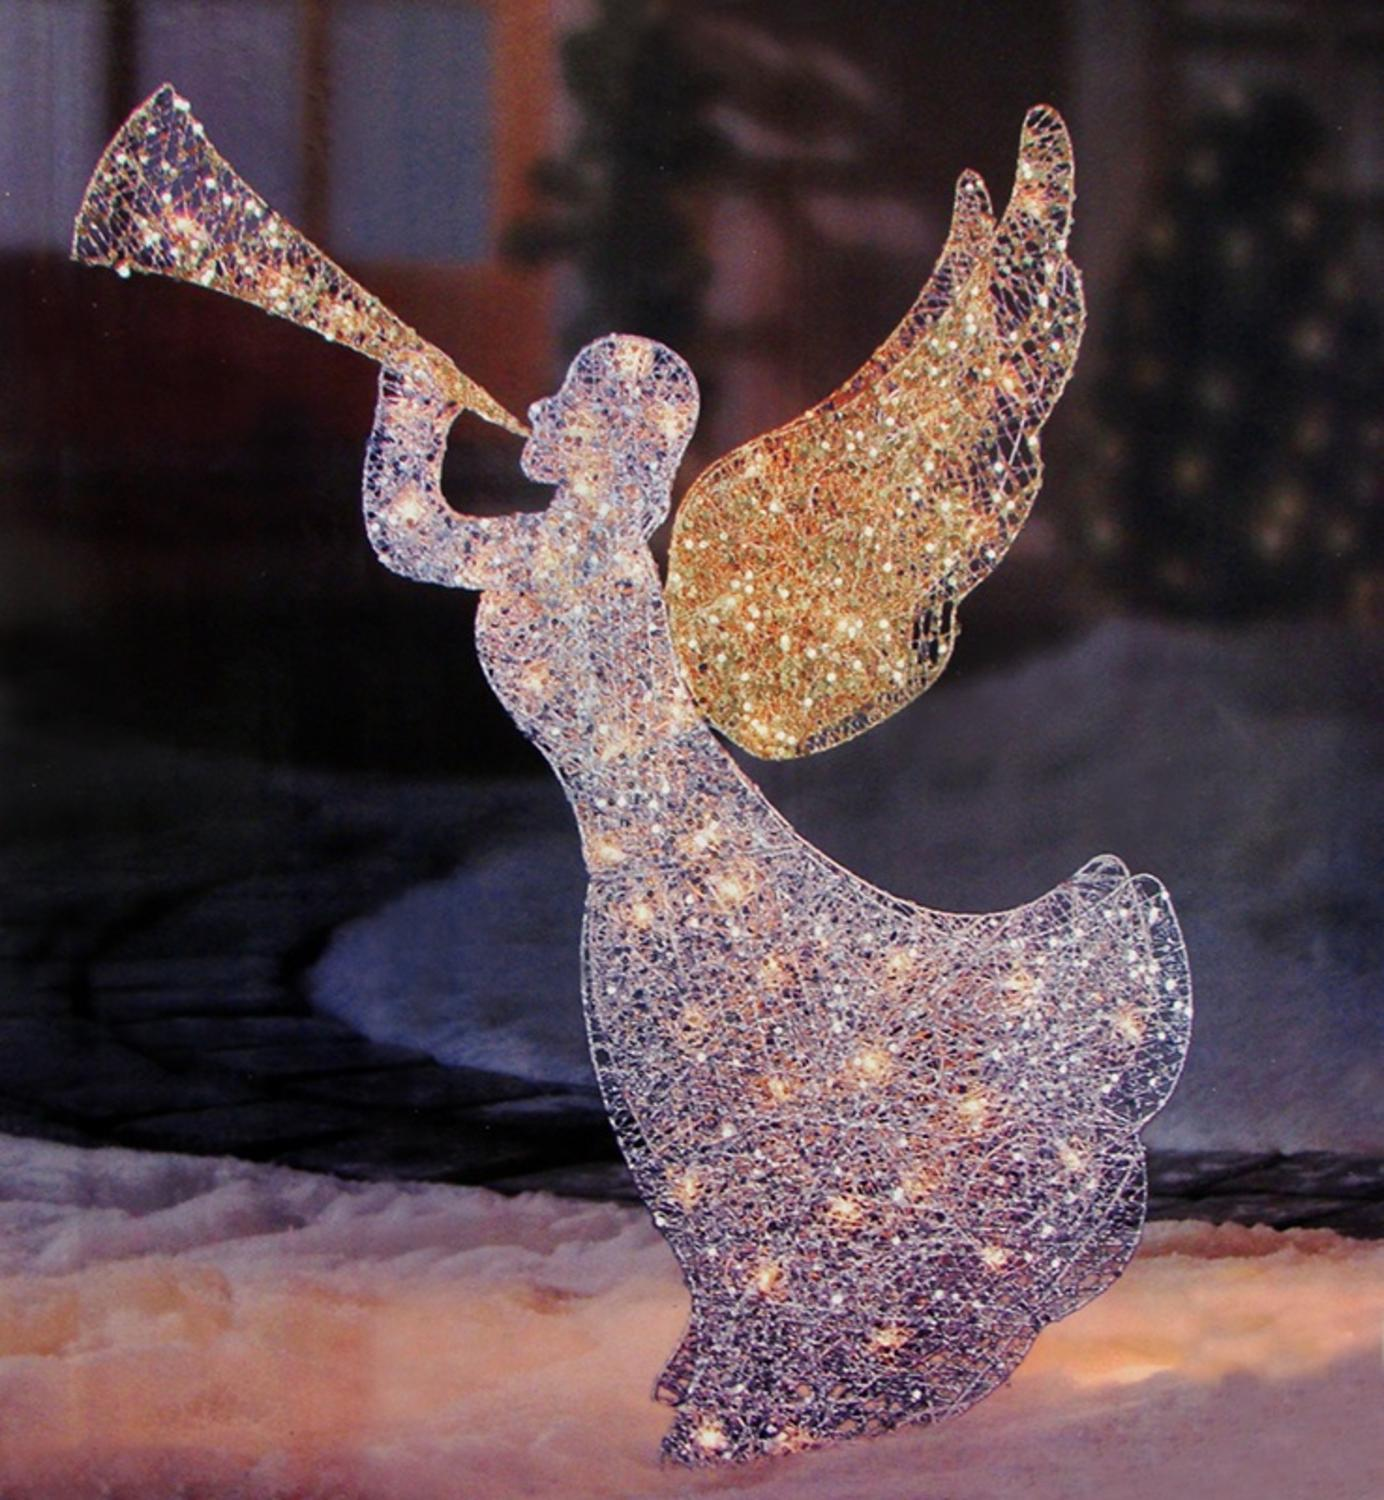 46 lighted glitter sequin 3 d angel with trumpet christmas outdoor decoration clear lights - Lighted Christmas Angel Yard Decor